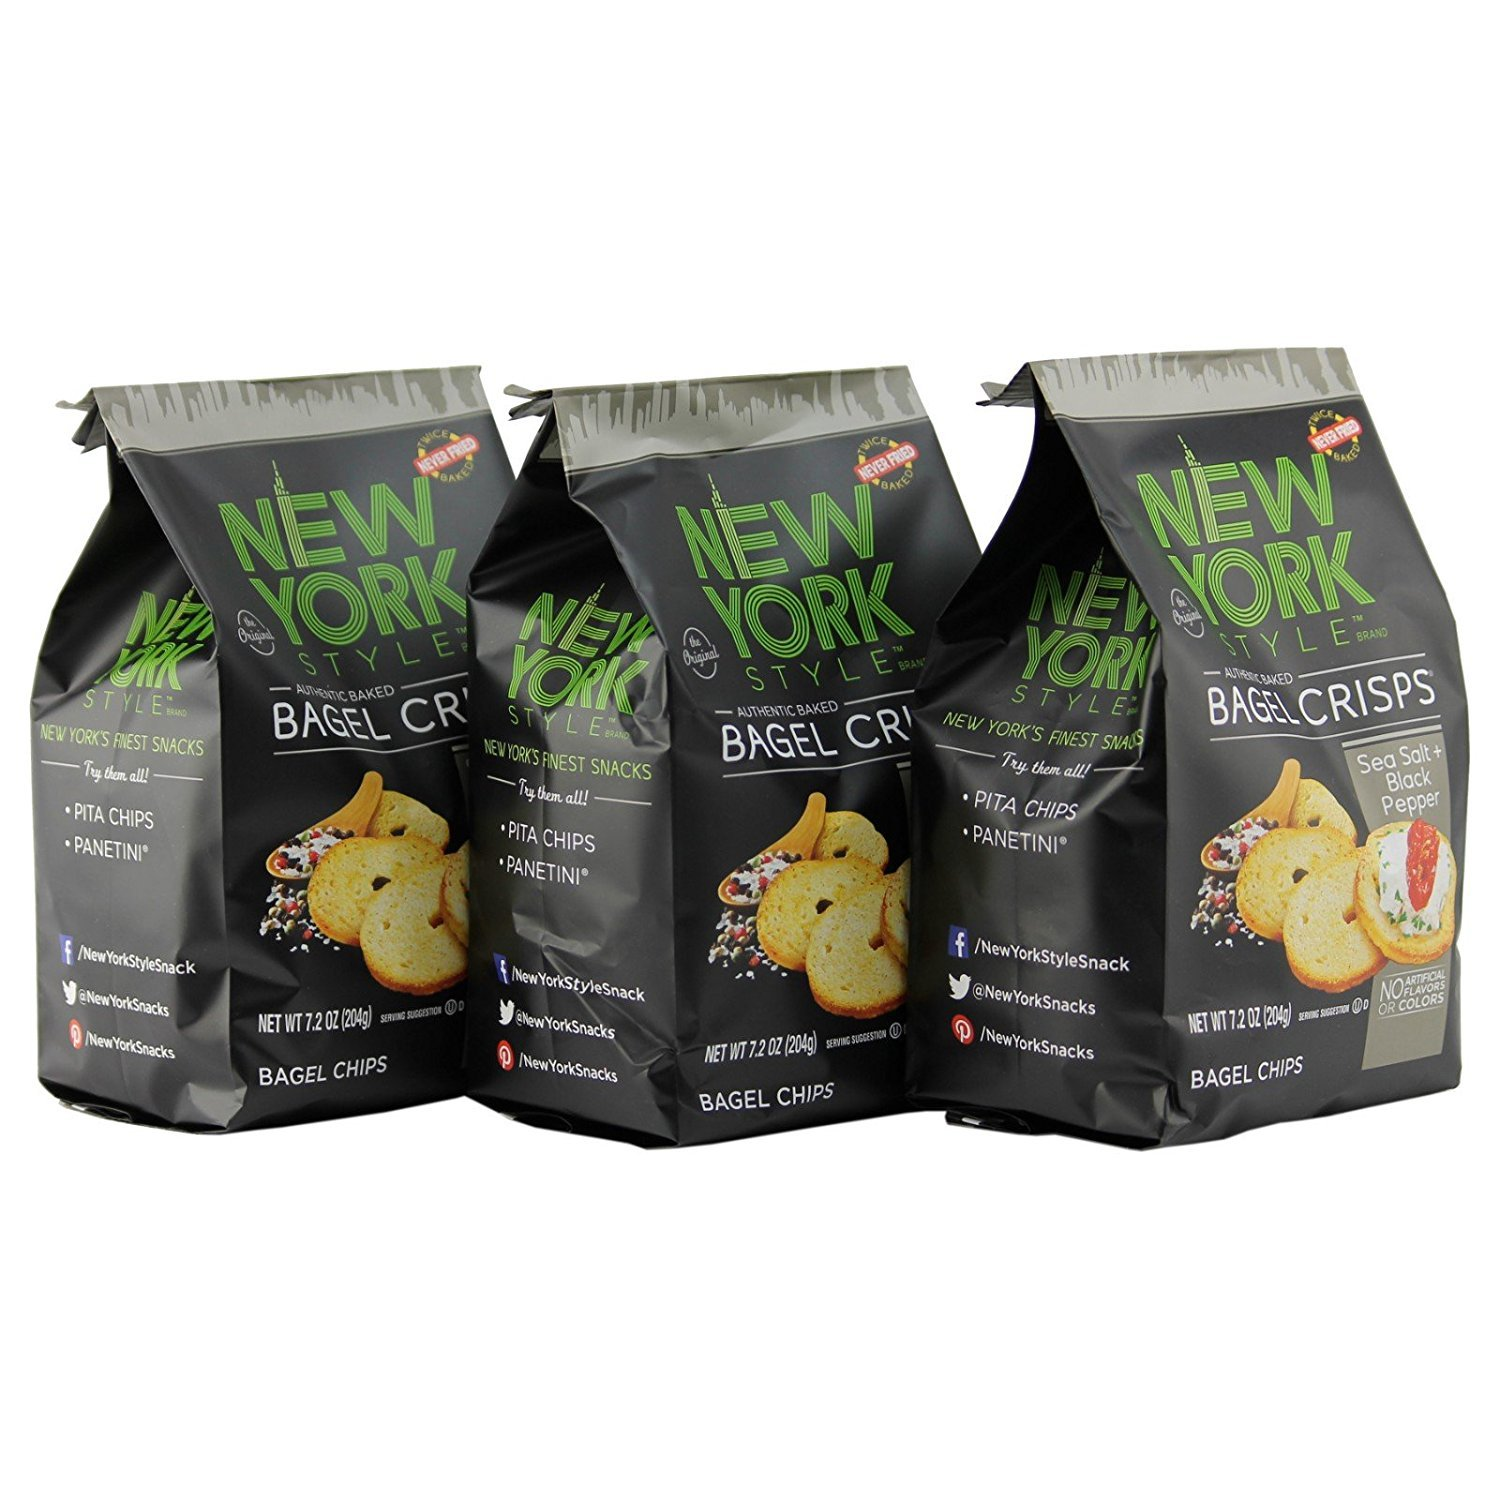 New York Style Bagel Crisps SEA SALT & CRACKED PEPPER, 7.2 Ounce - (Pack of 3) Add Some Extra Crunch by New York Style